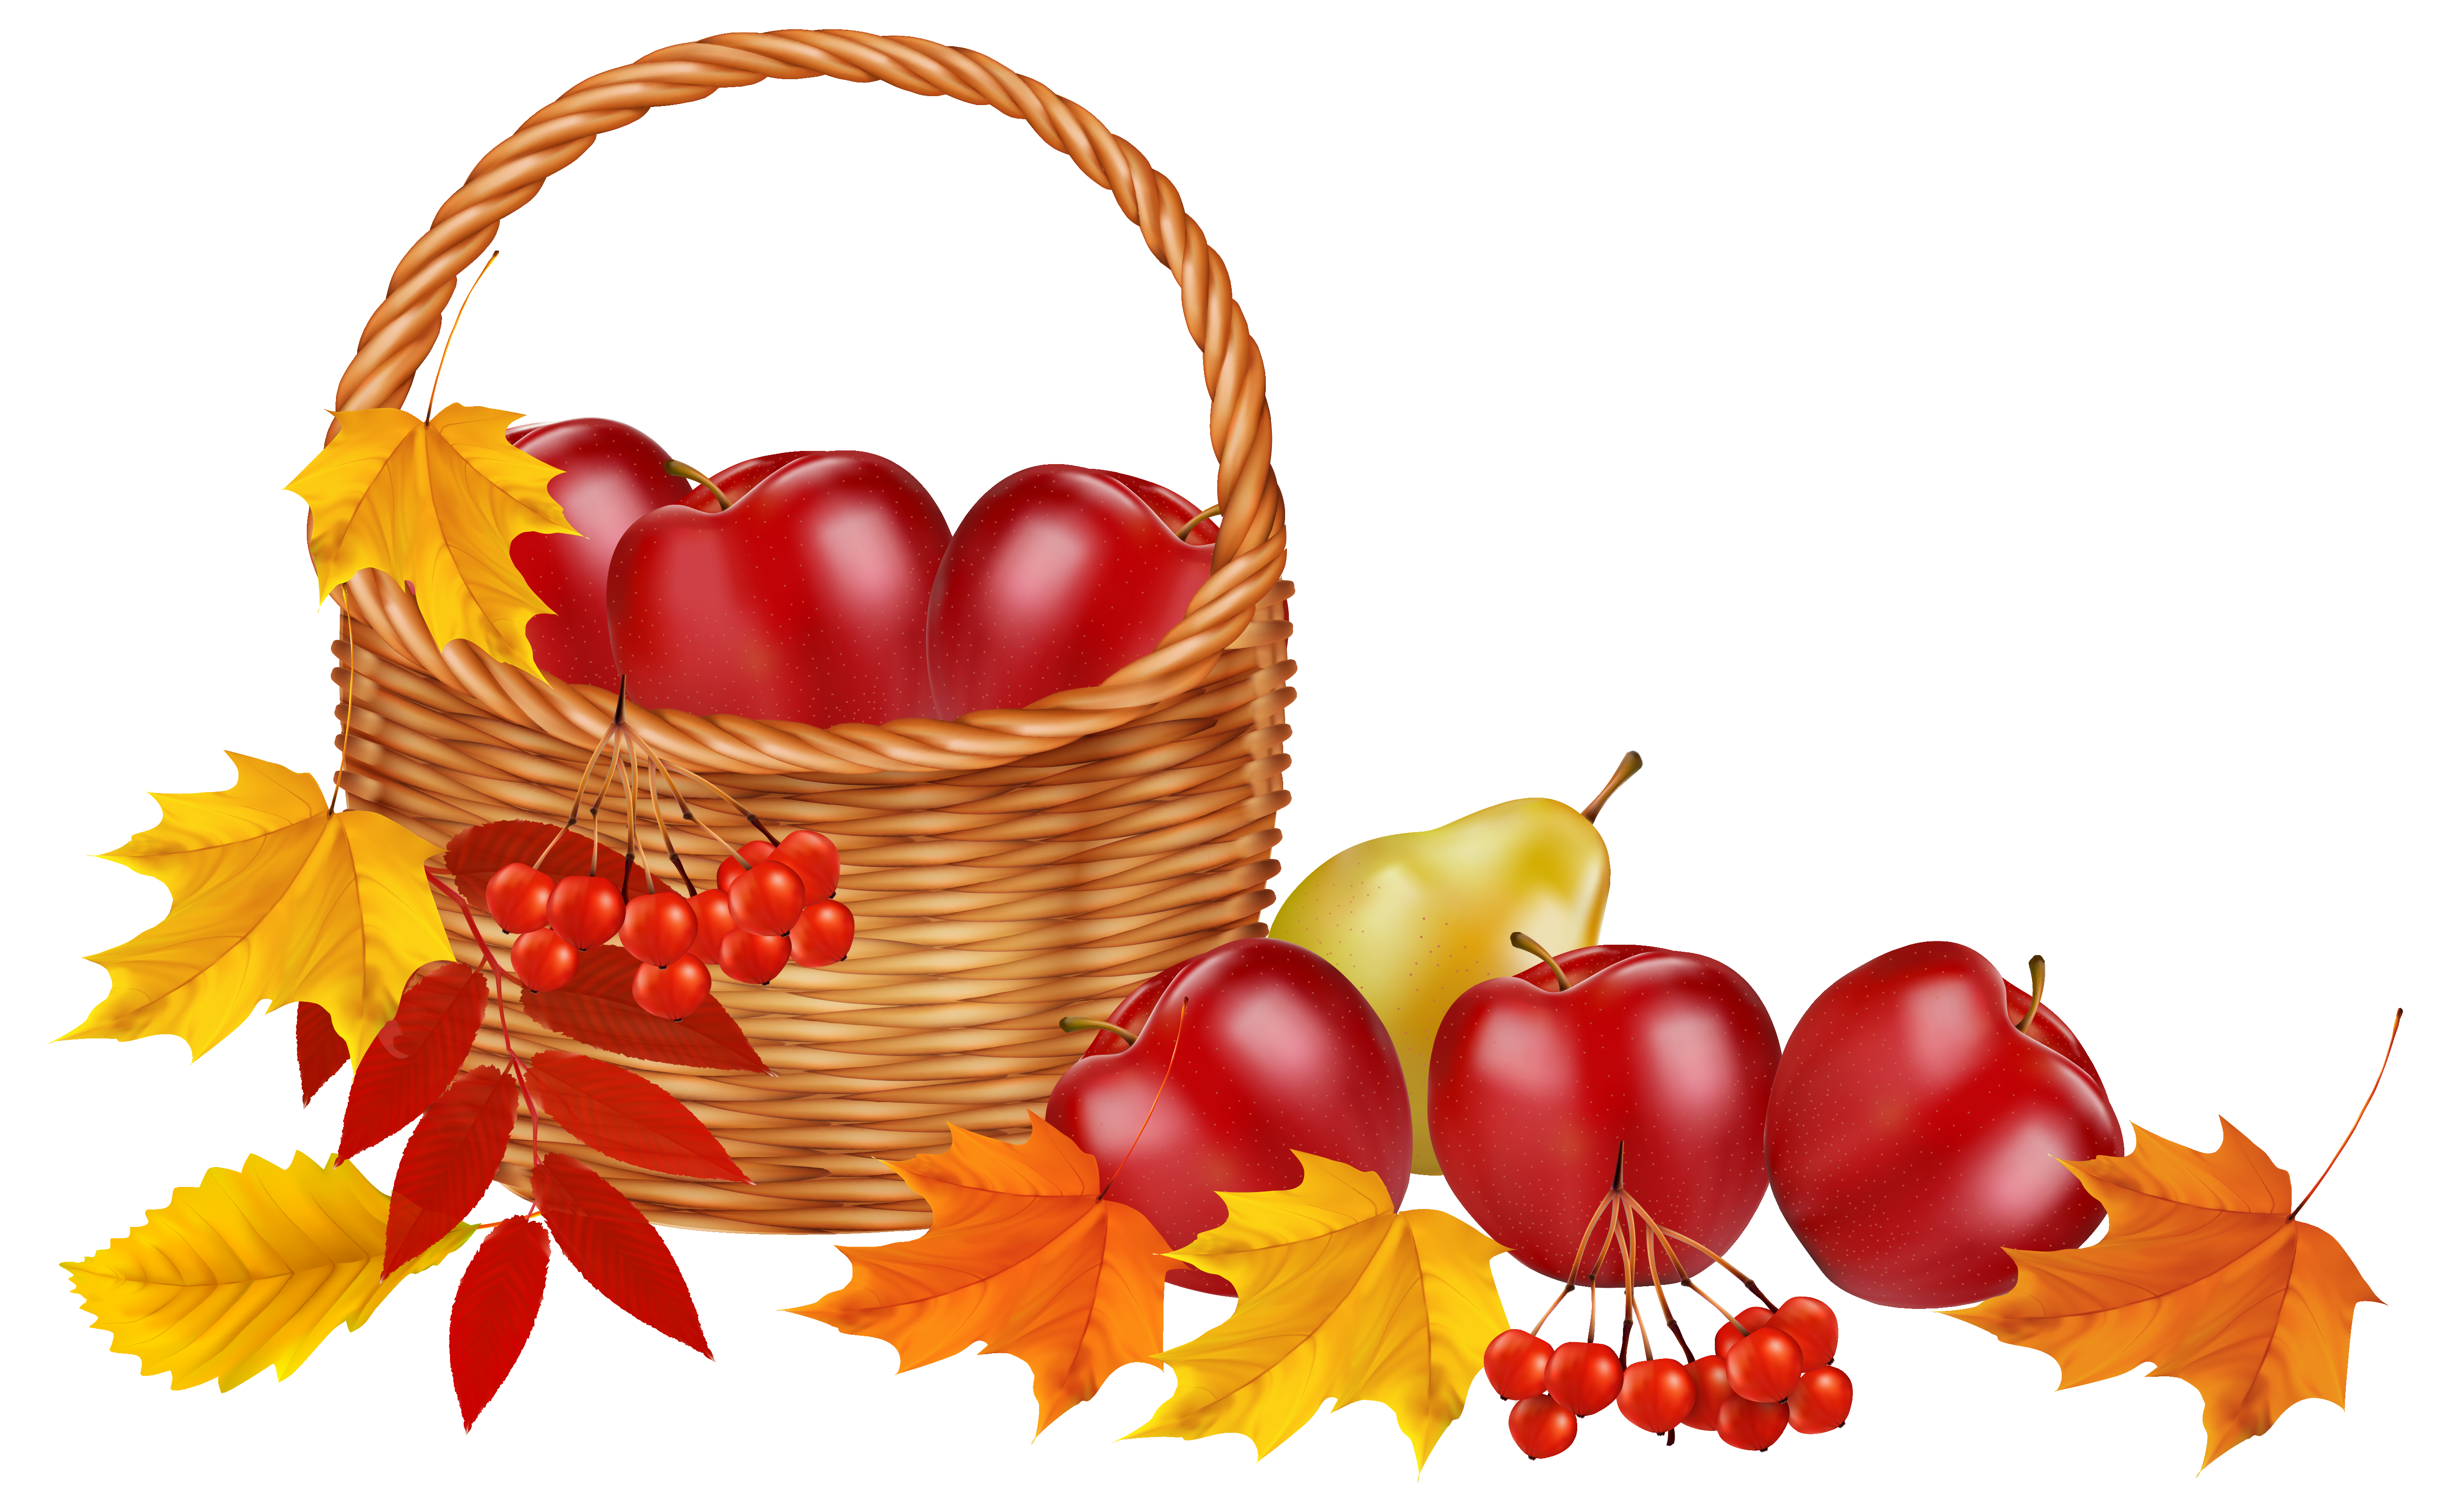 Clipart fruit summer fruit. Basket with fruits and